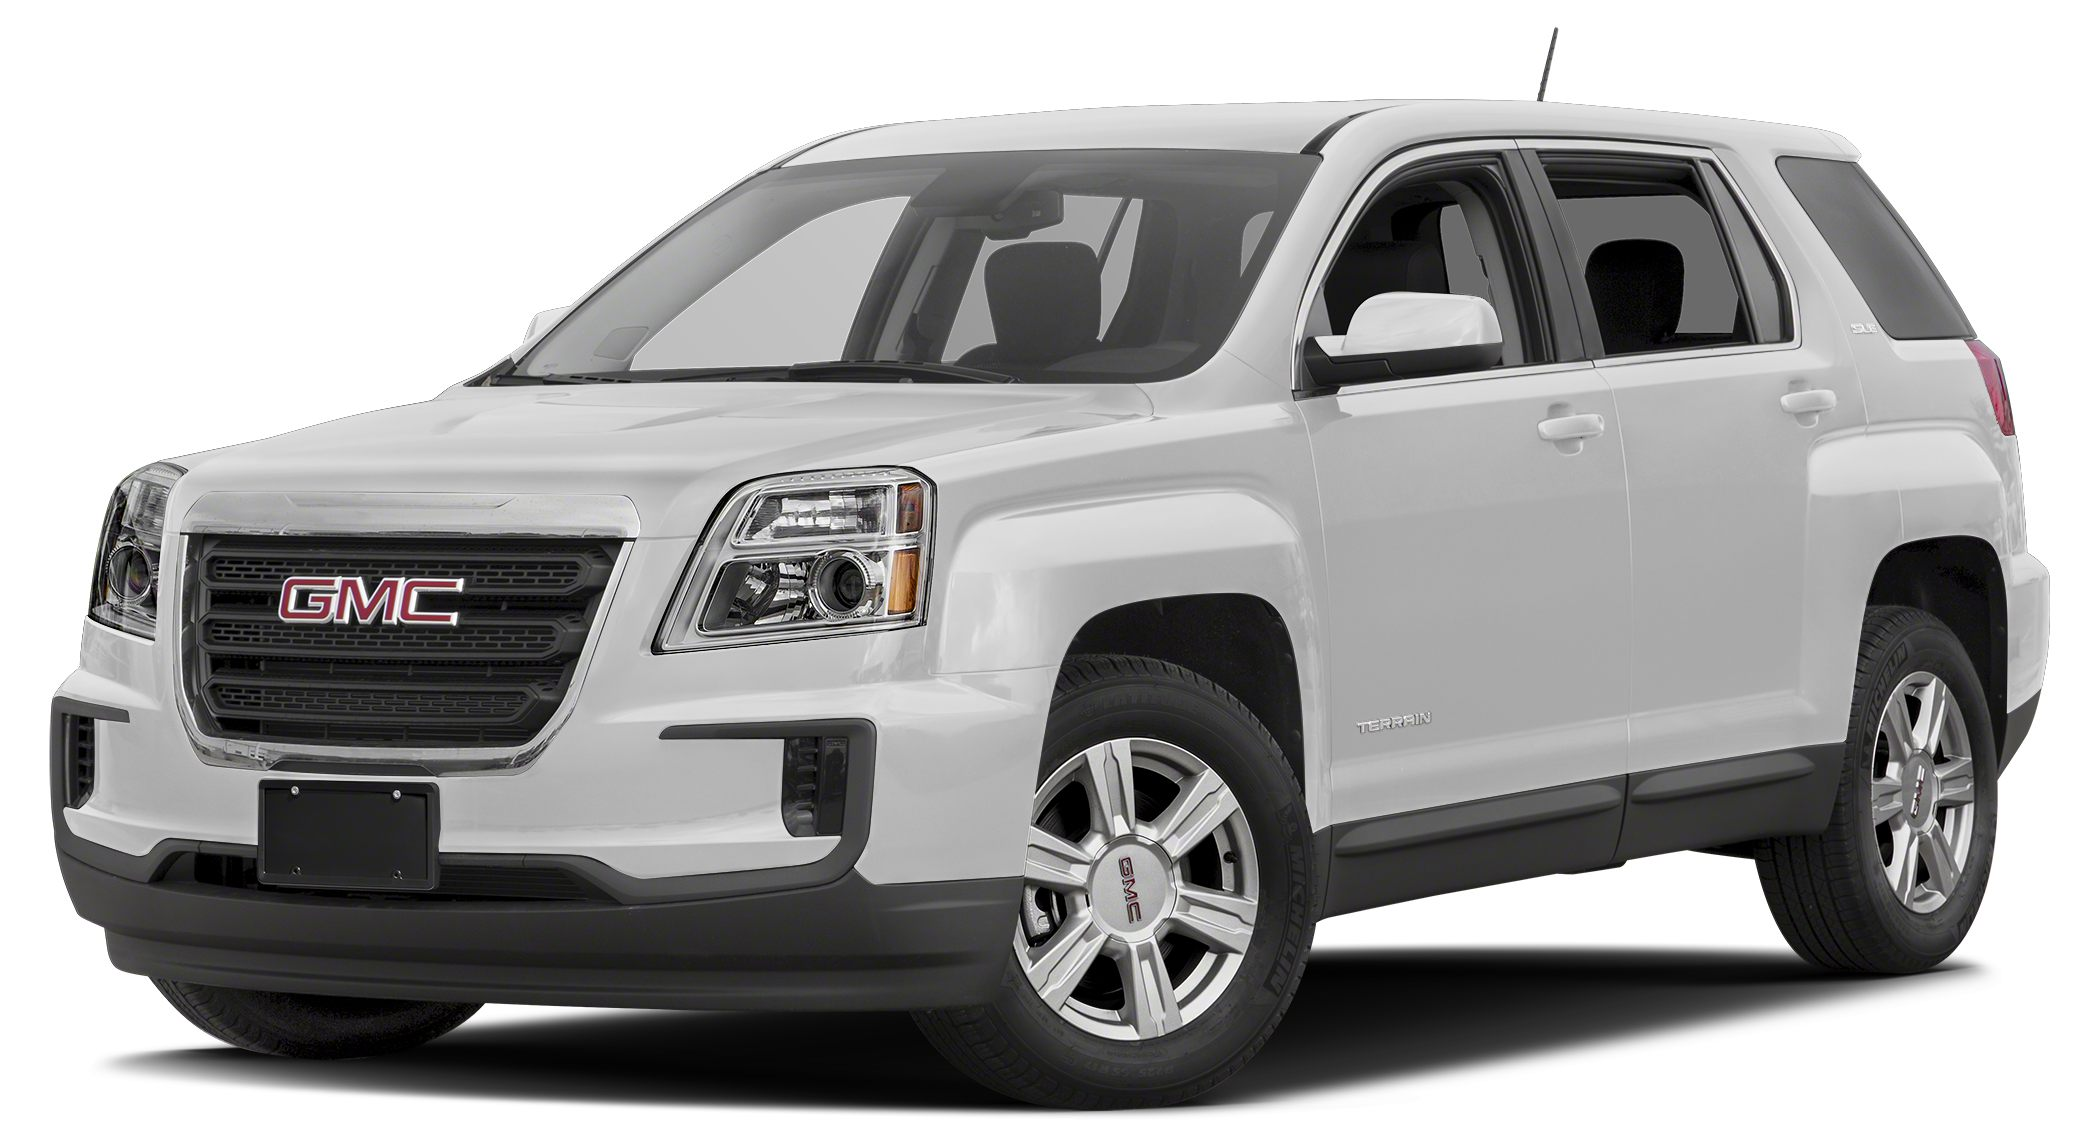 2016 GMC Terrain SLE-1 SUMMIT WHITE exterior and JET BLACK interior SLE trim Onboard Communicati